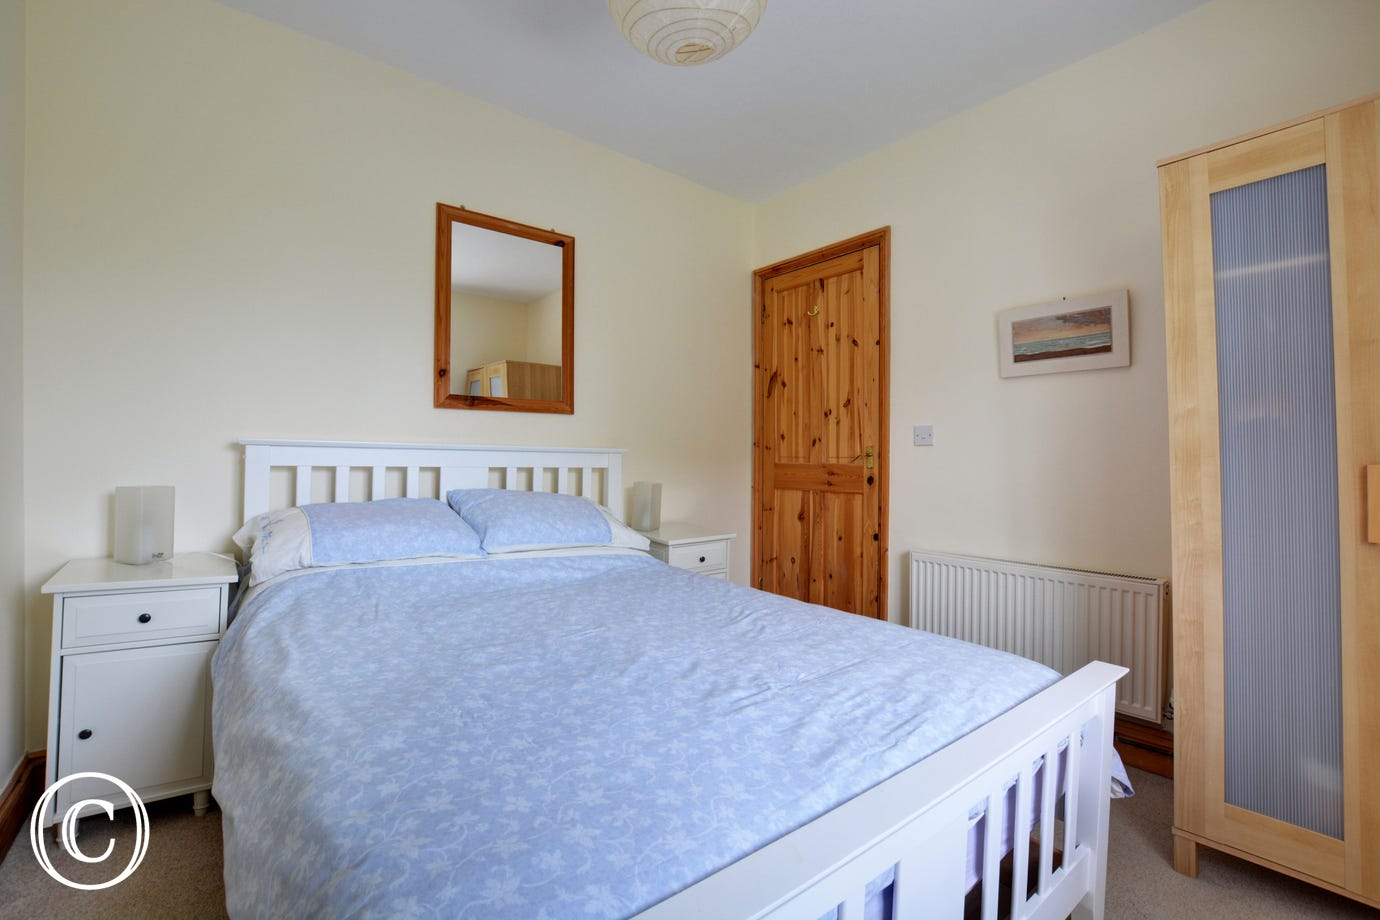 A traditional double bedroom with a double bed and pine bedroom furniture